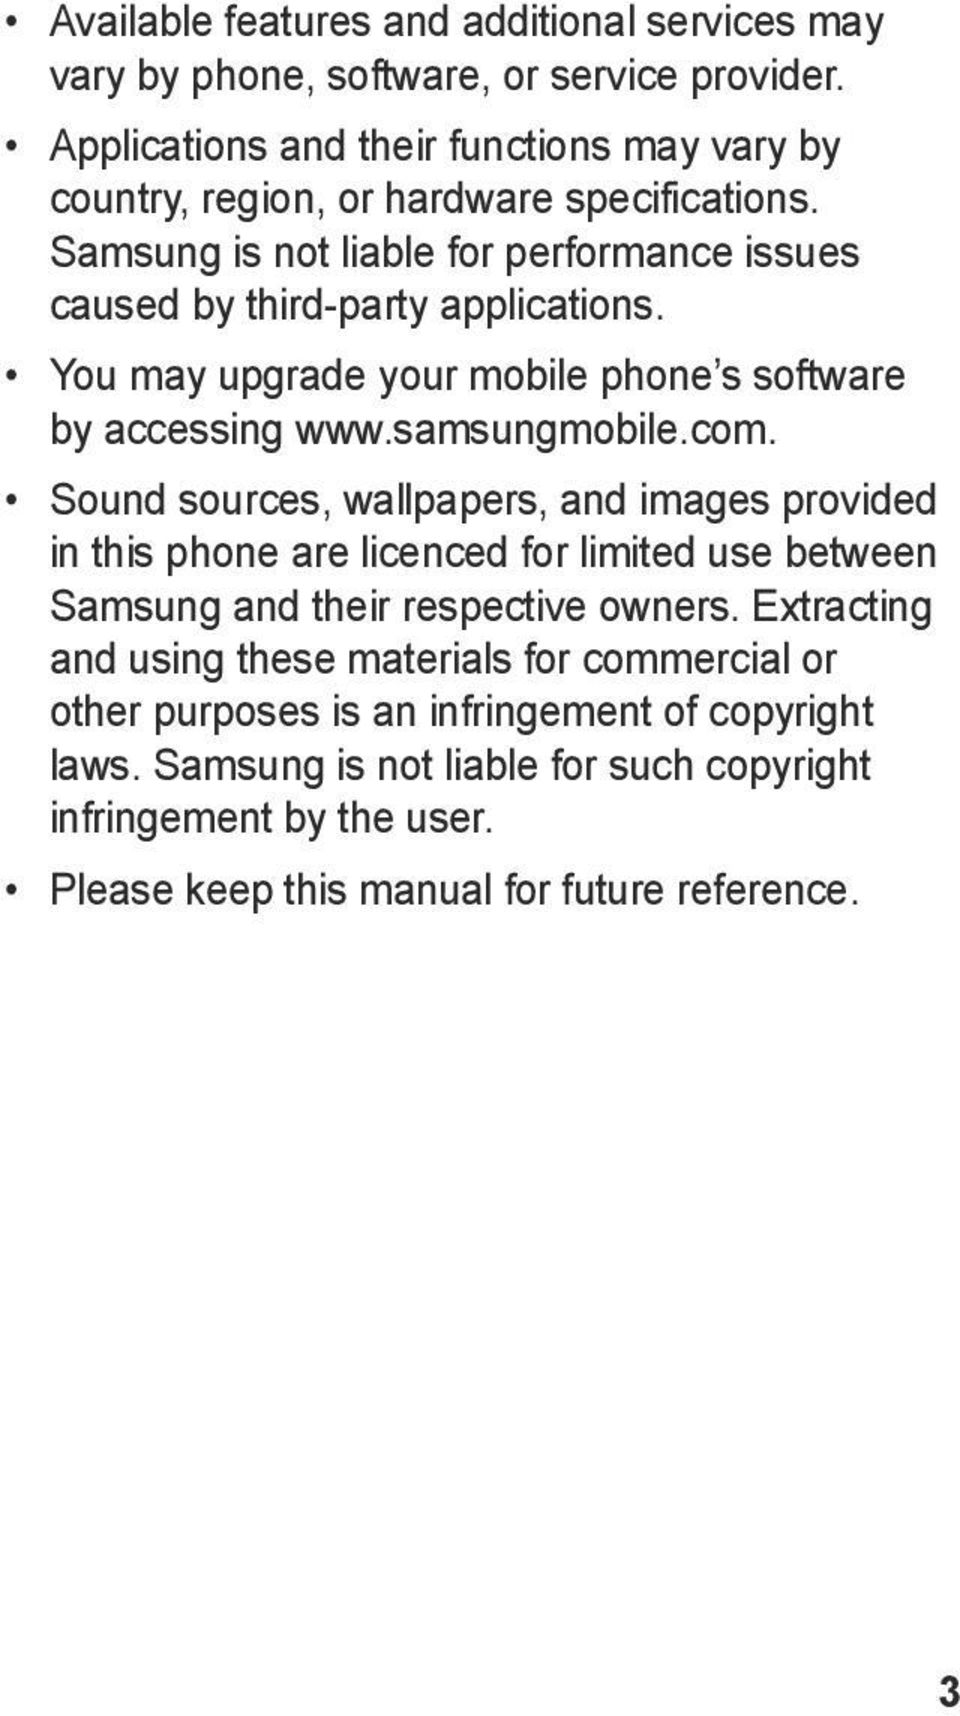 You may upgrade your mobile phone s software by accessing www.samsungmobile.com.